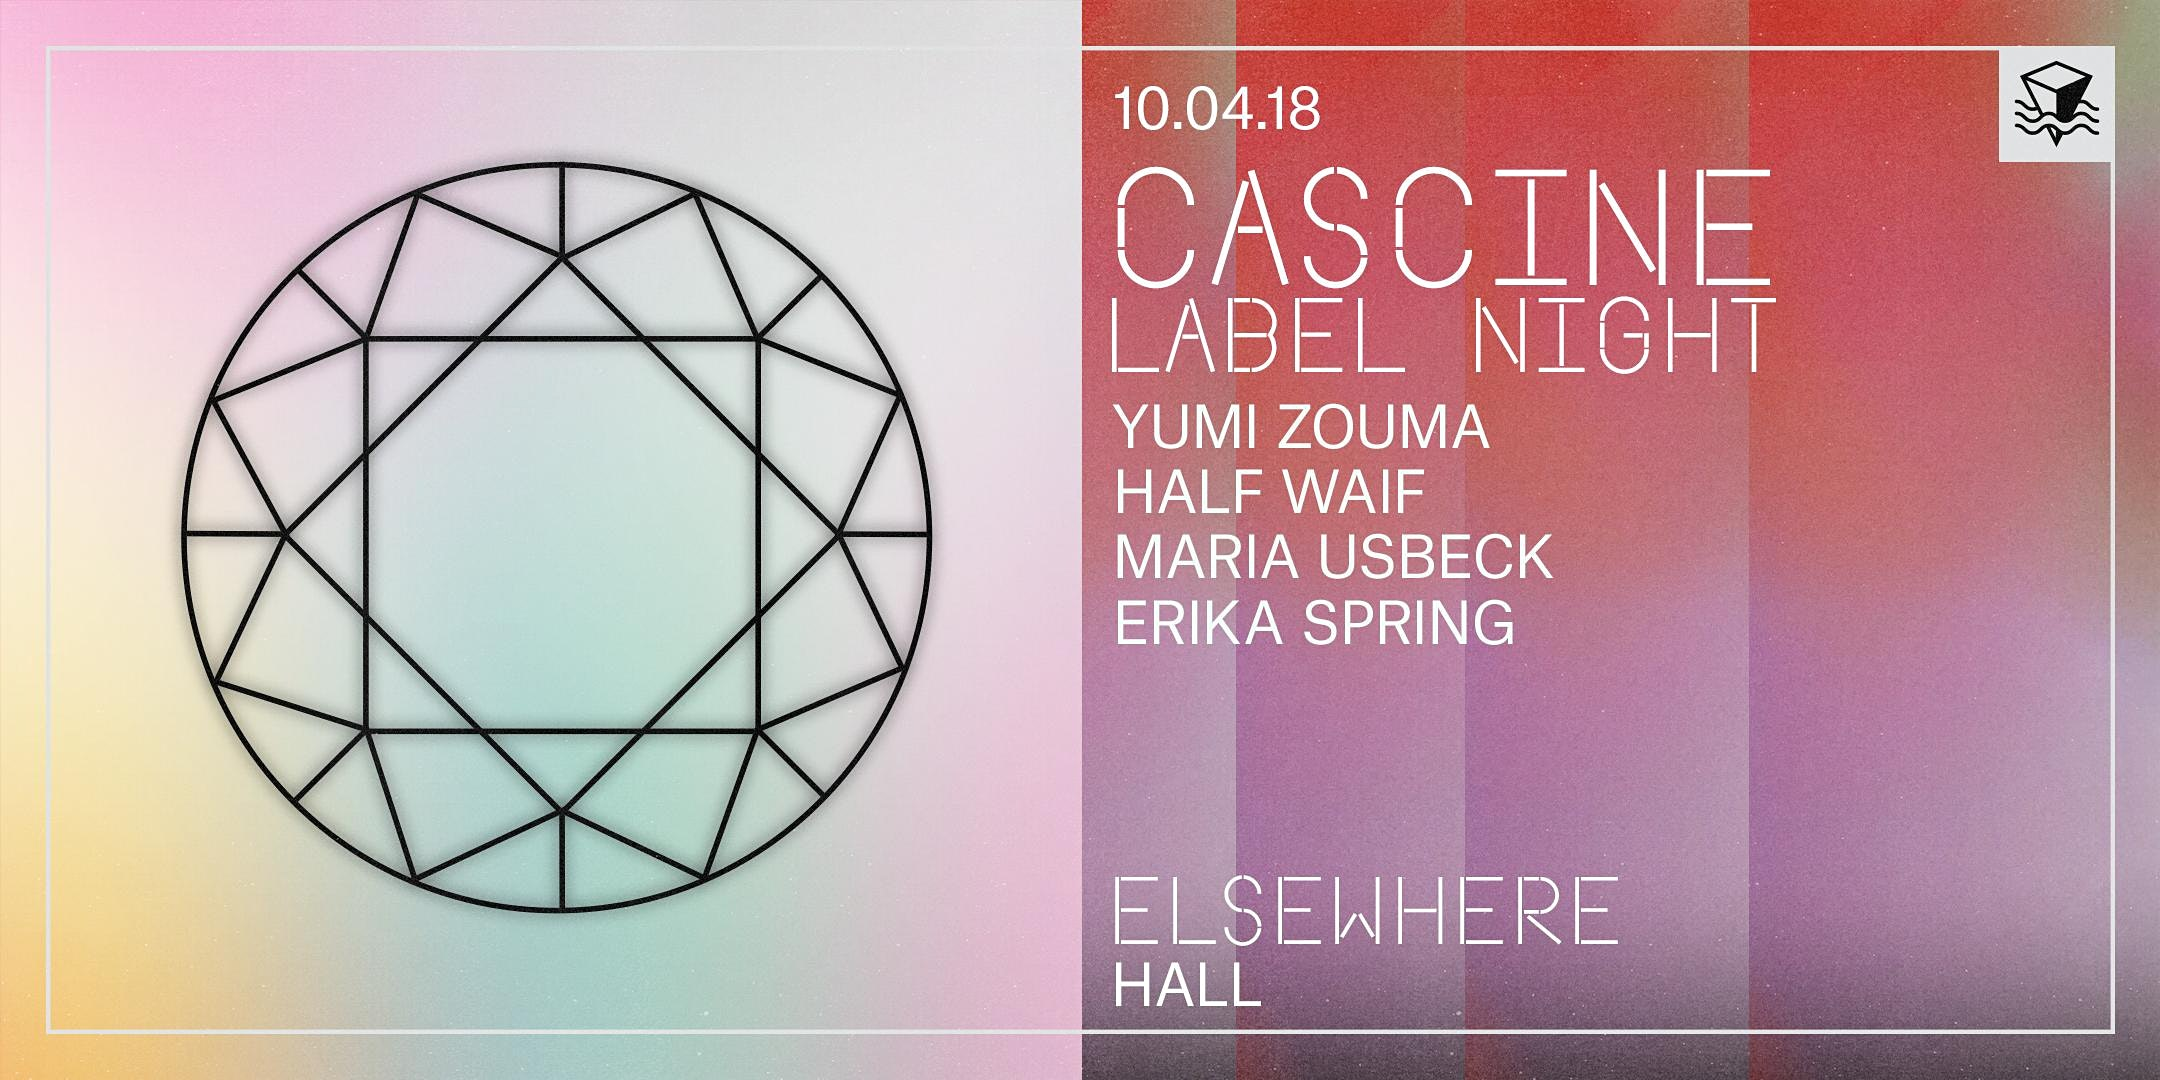 Cascine Label Night with Yumi Zouma, Half Waif, Maria Usbeck & Erika Spring